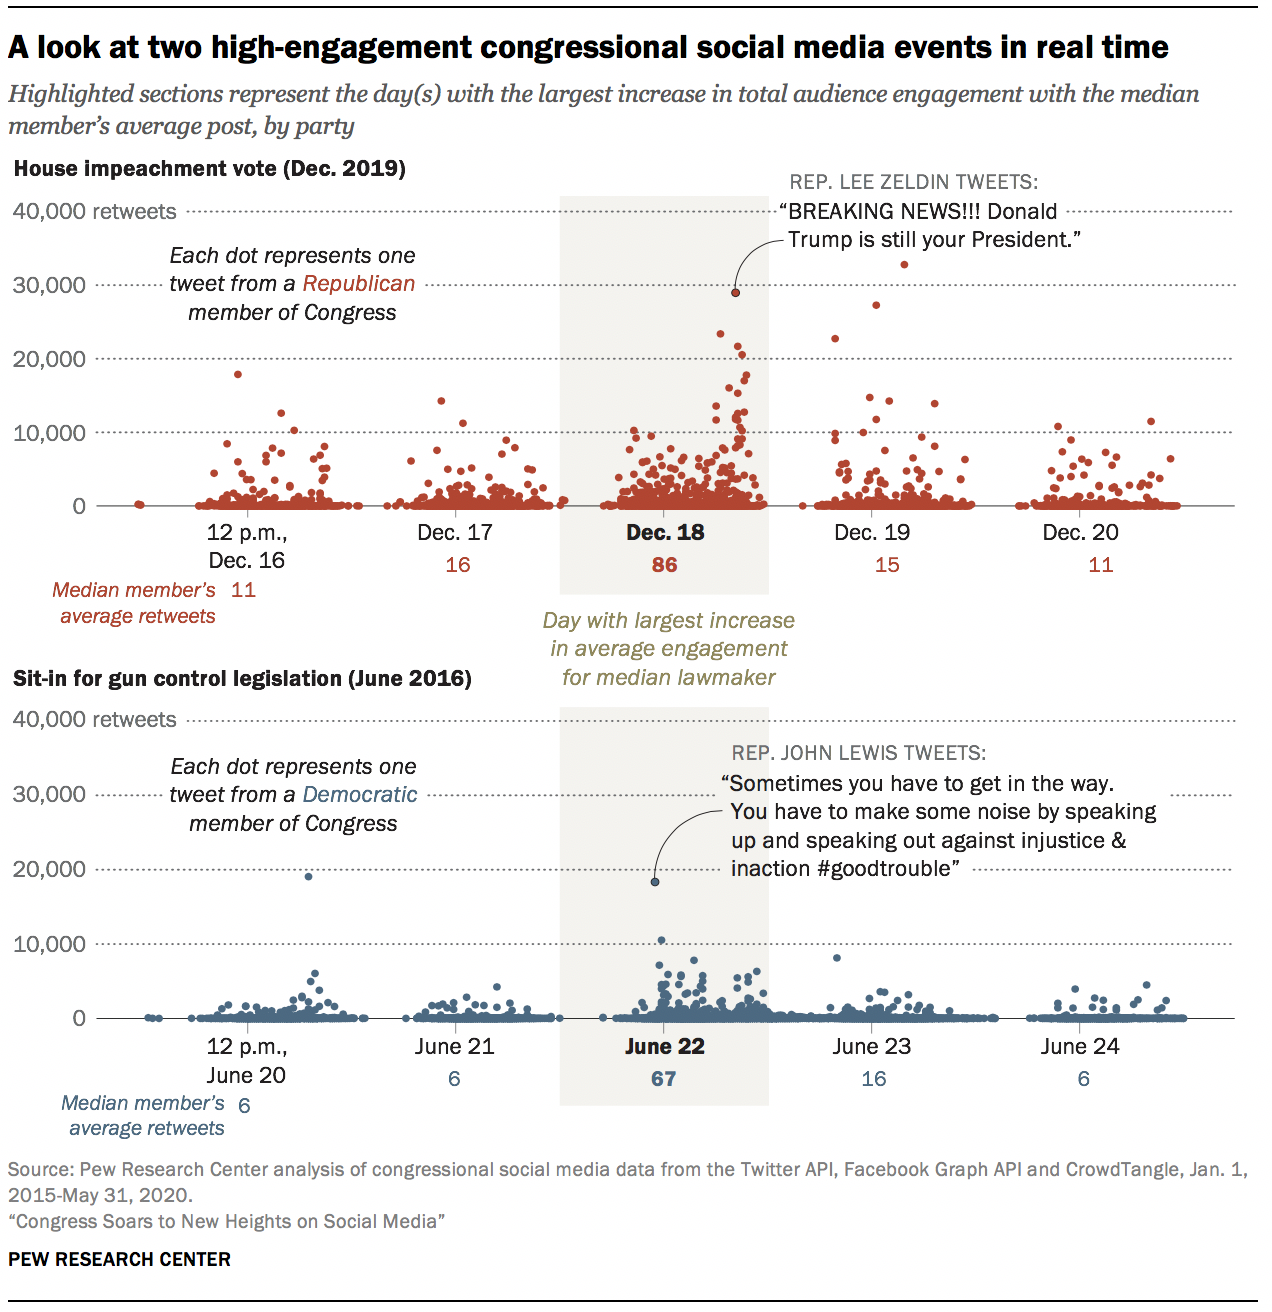 A look at two high-engagement congressional social media events in real time